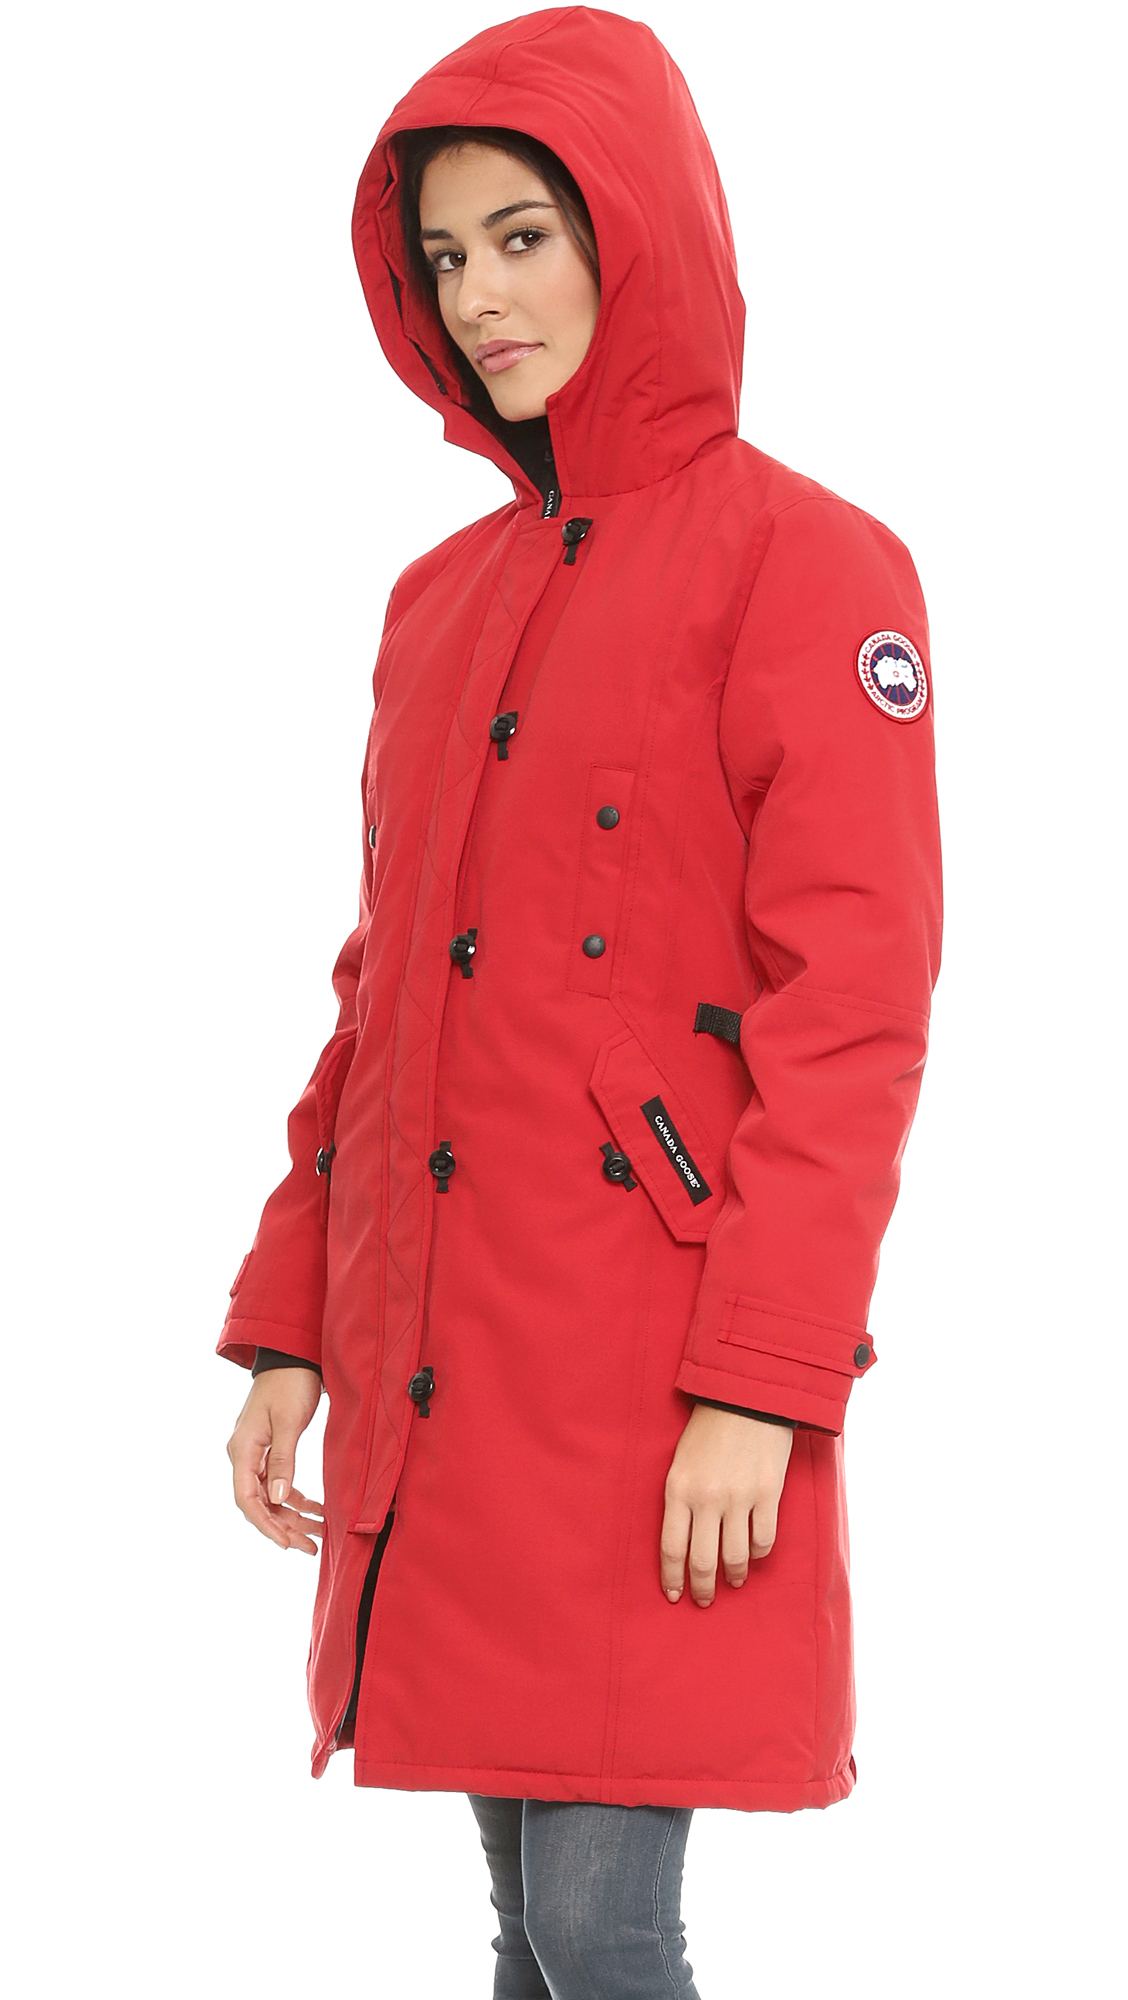 Cheap Canada Goose | 100% Canadian Made,Save up to 80% and ...